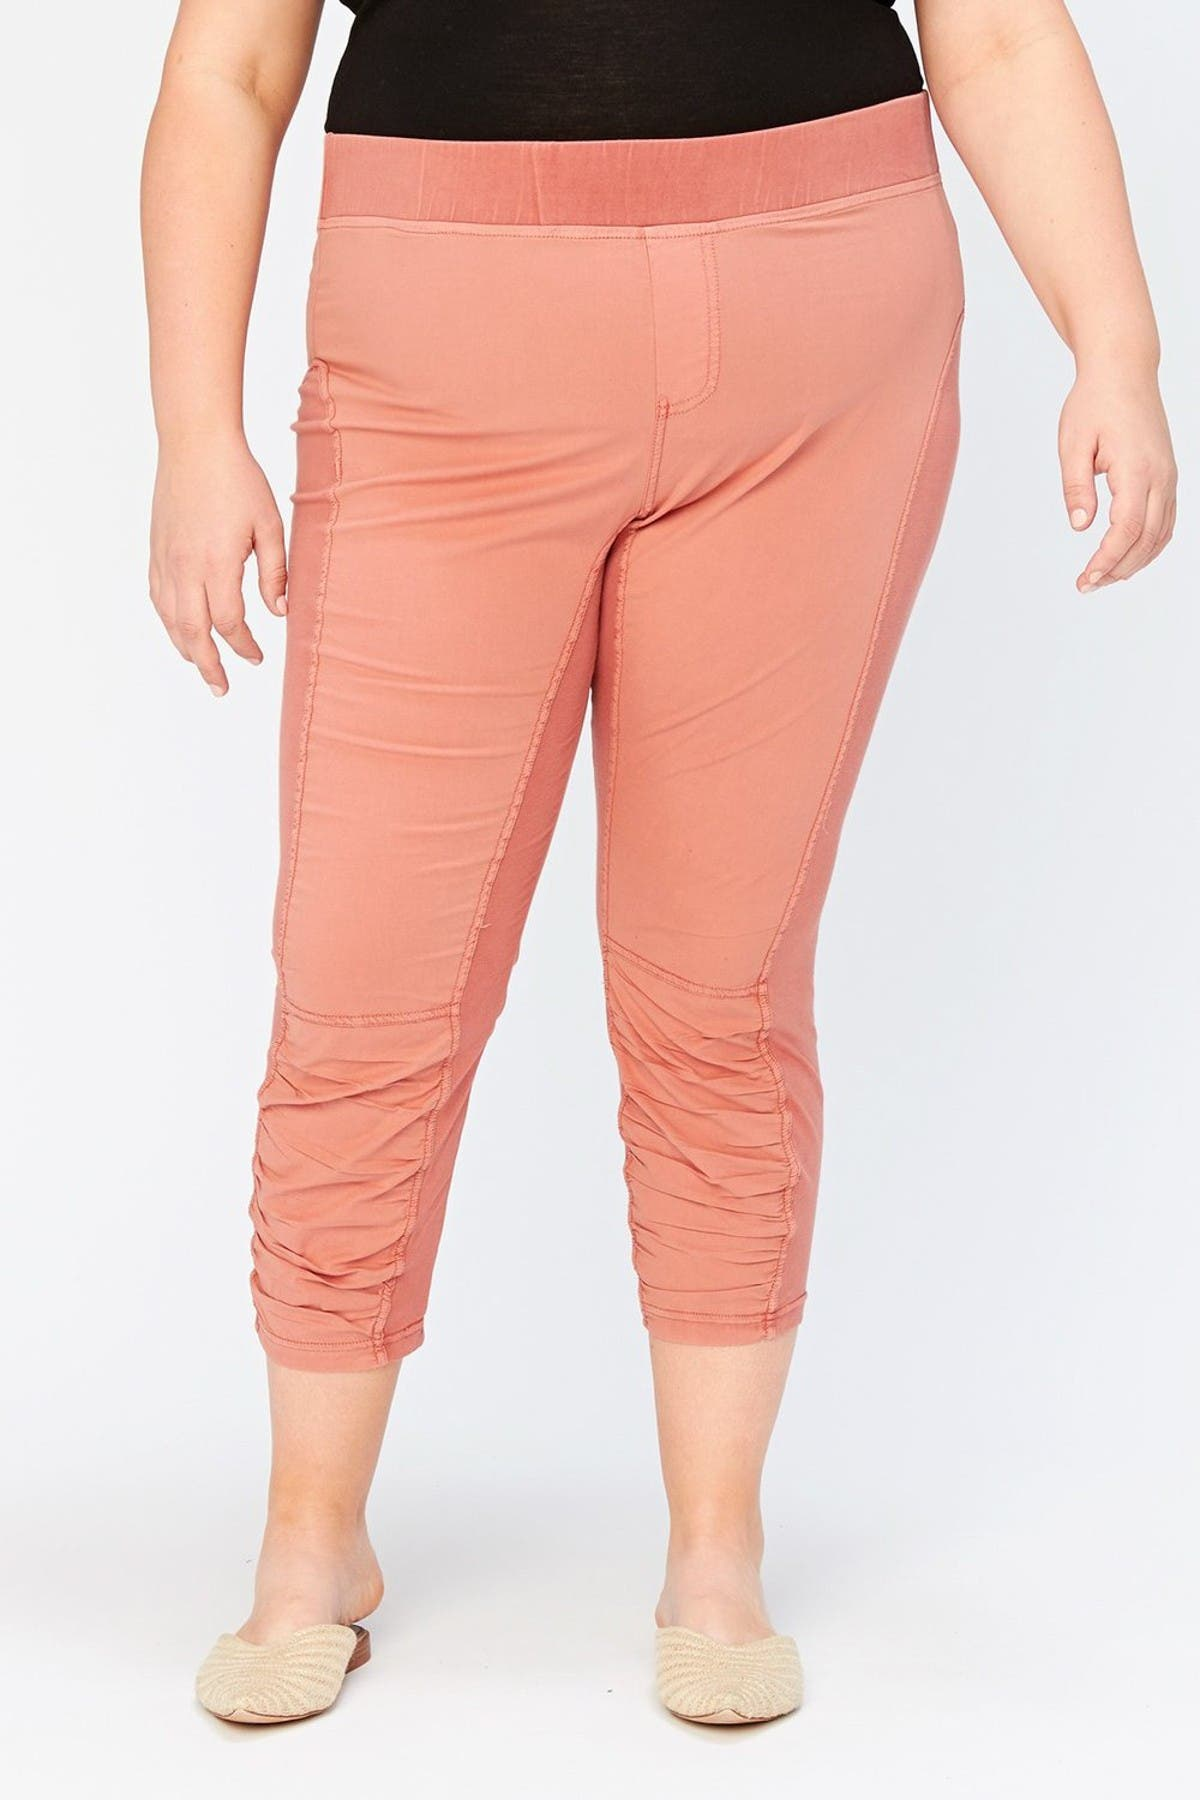 Image of XCVI Jetter Ruched Crop Leggings